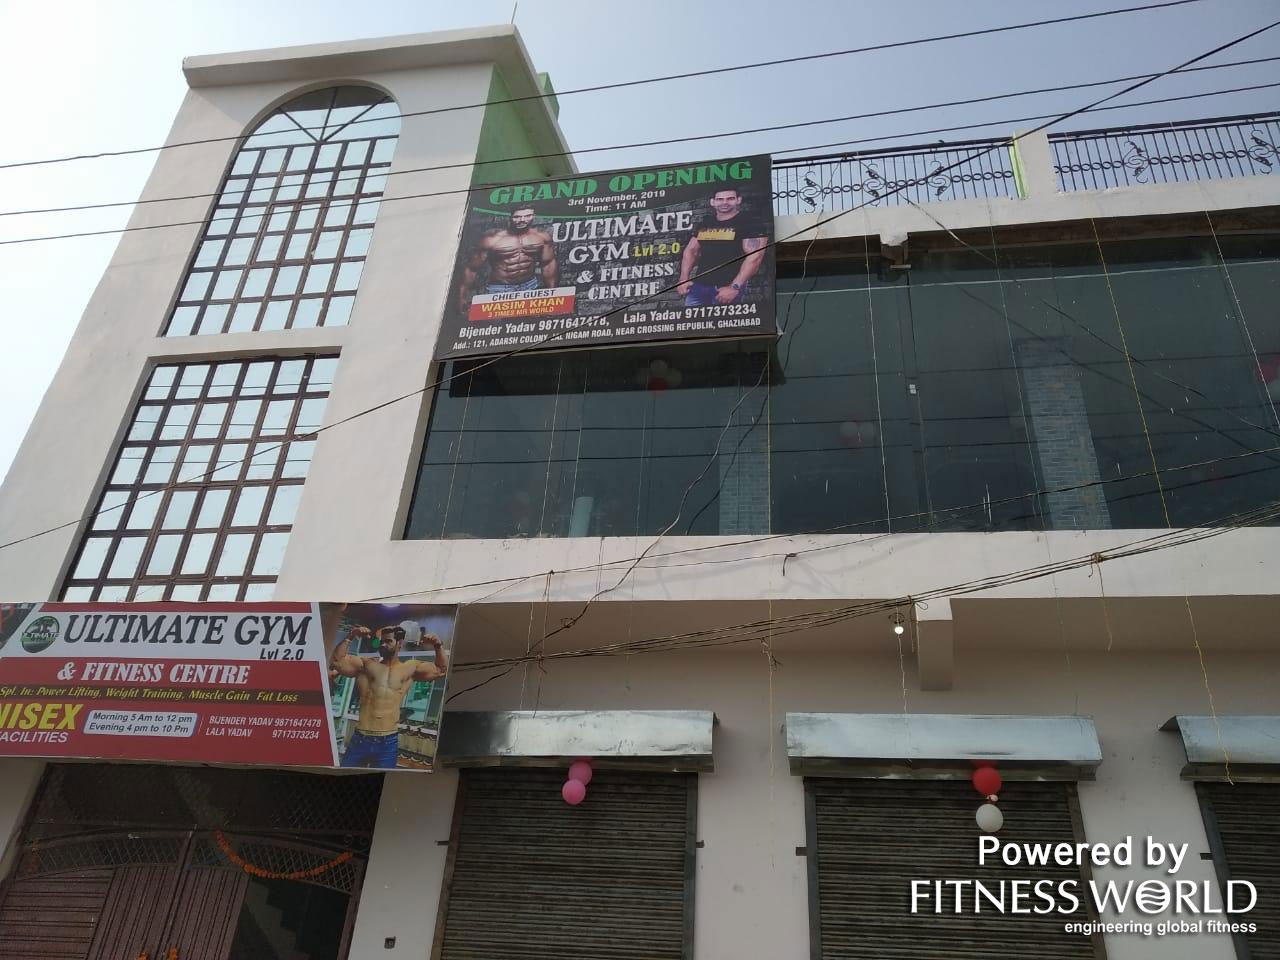 Ultimate Gym and Fitness Center – Ghaziabad